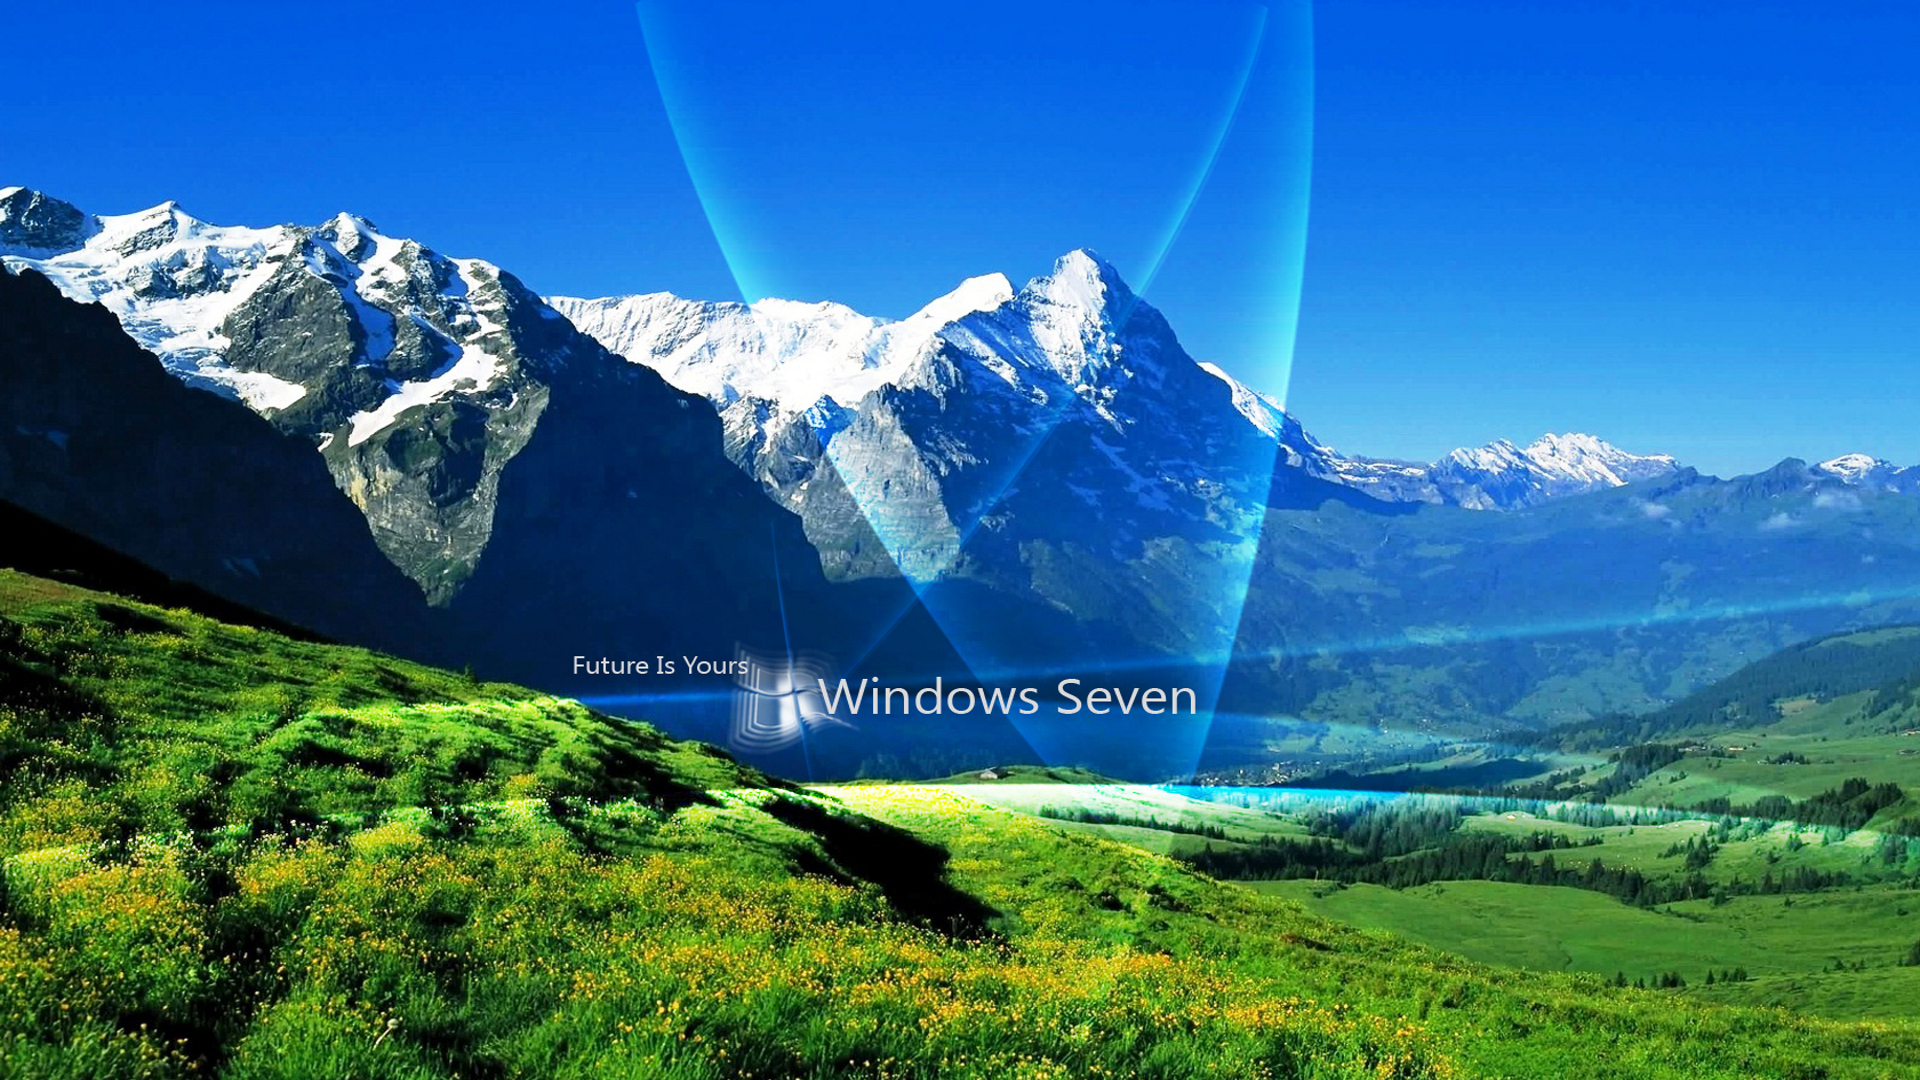 37 high definition windows 7 wallpapers/backgrounds for free download